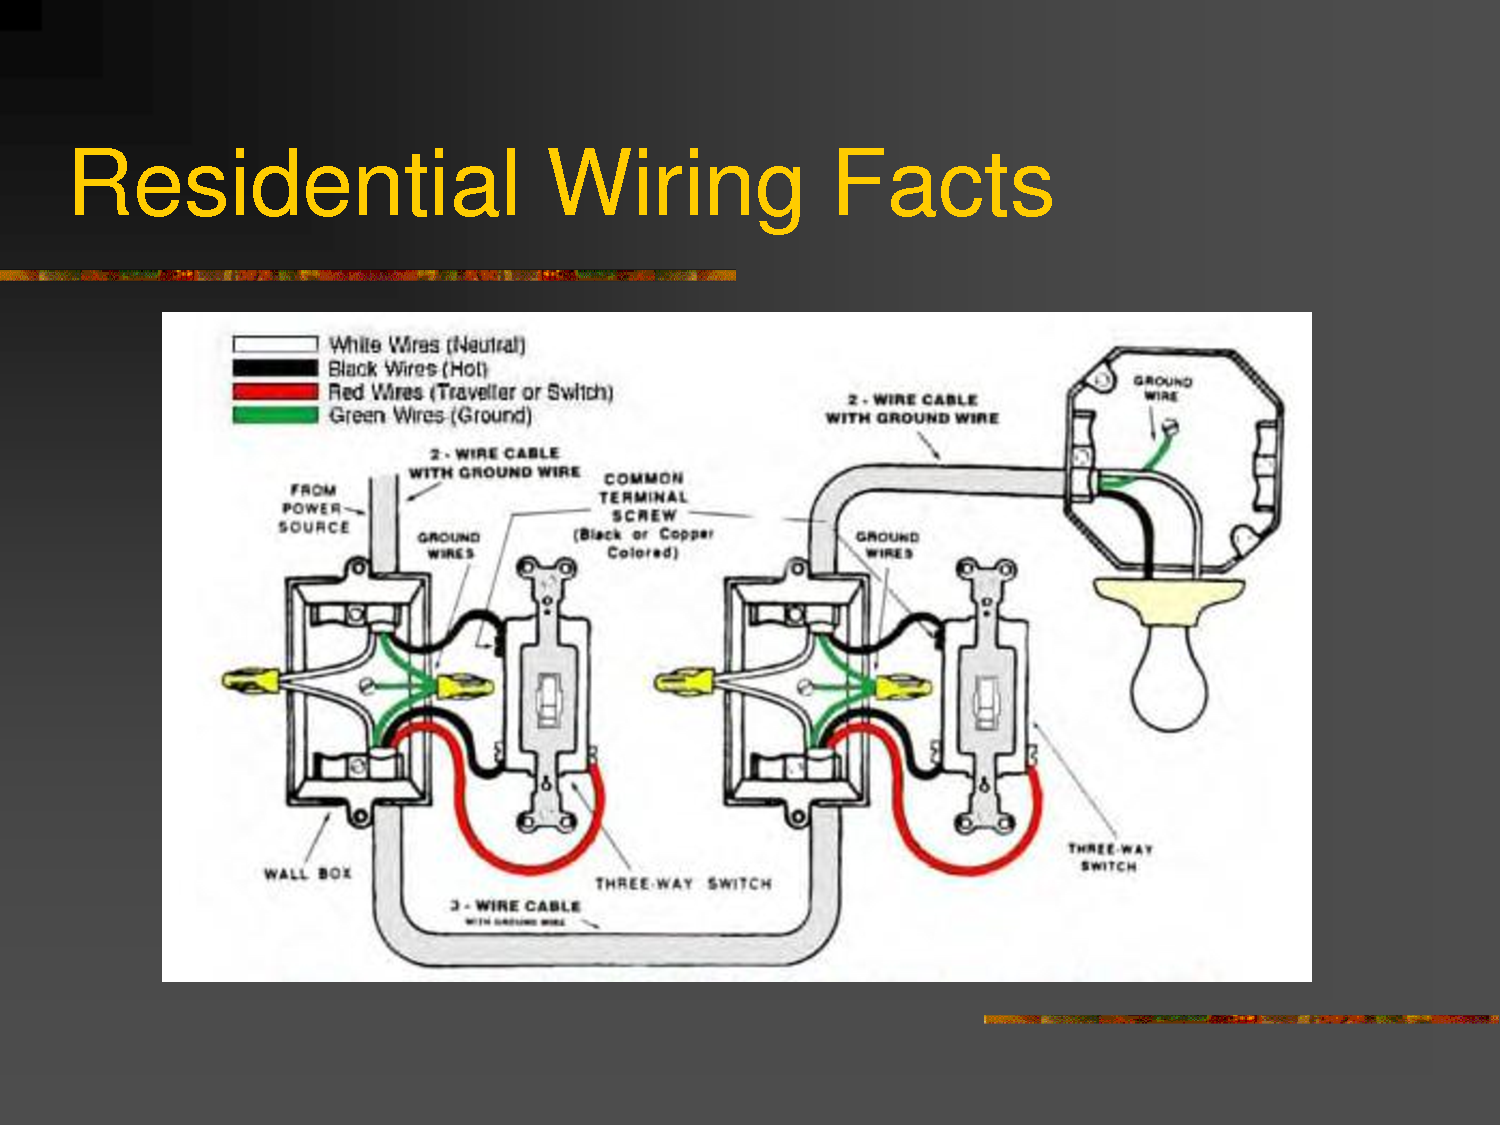 4 best images of residential wiring diagrams house electrical residential wiring diagrams and schematics 4 best [ 1500 x 1125 Pixel ]